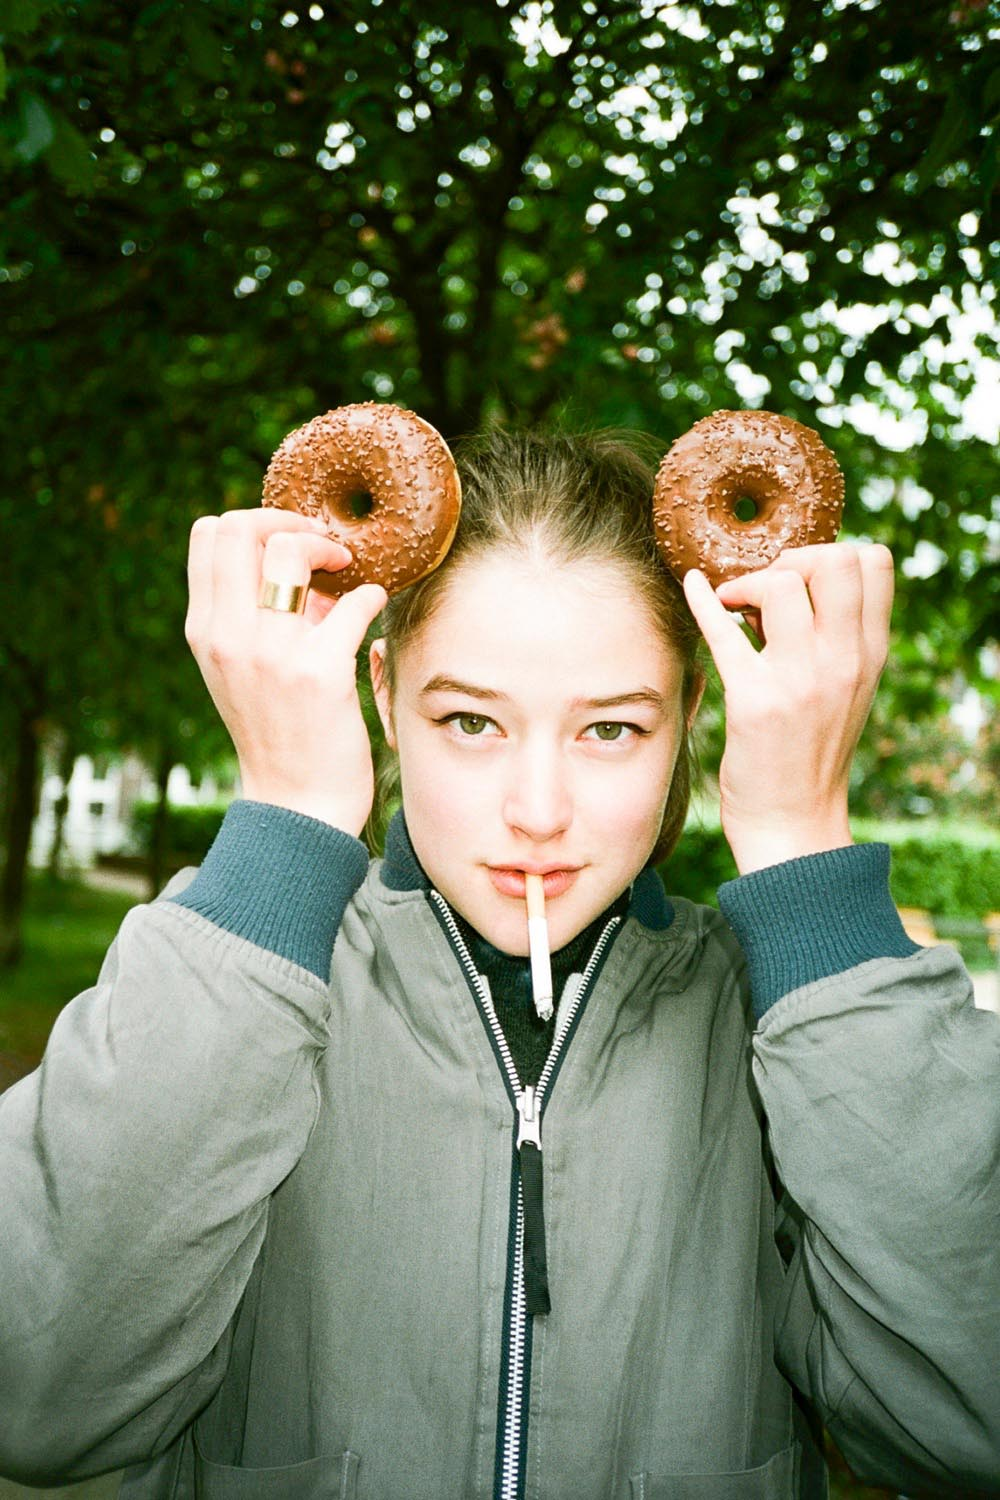 portrait people woman women girl girls cigarette smoking donuts donut outdoor